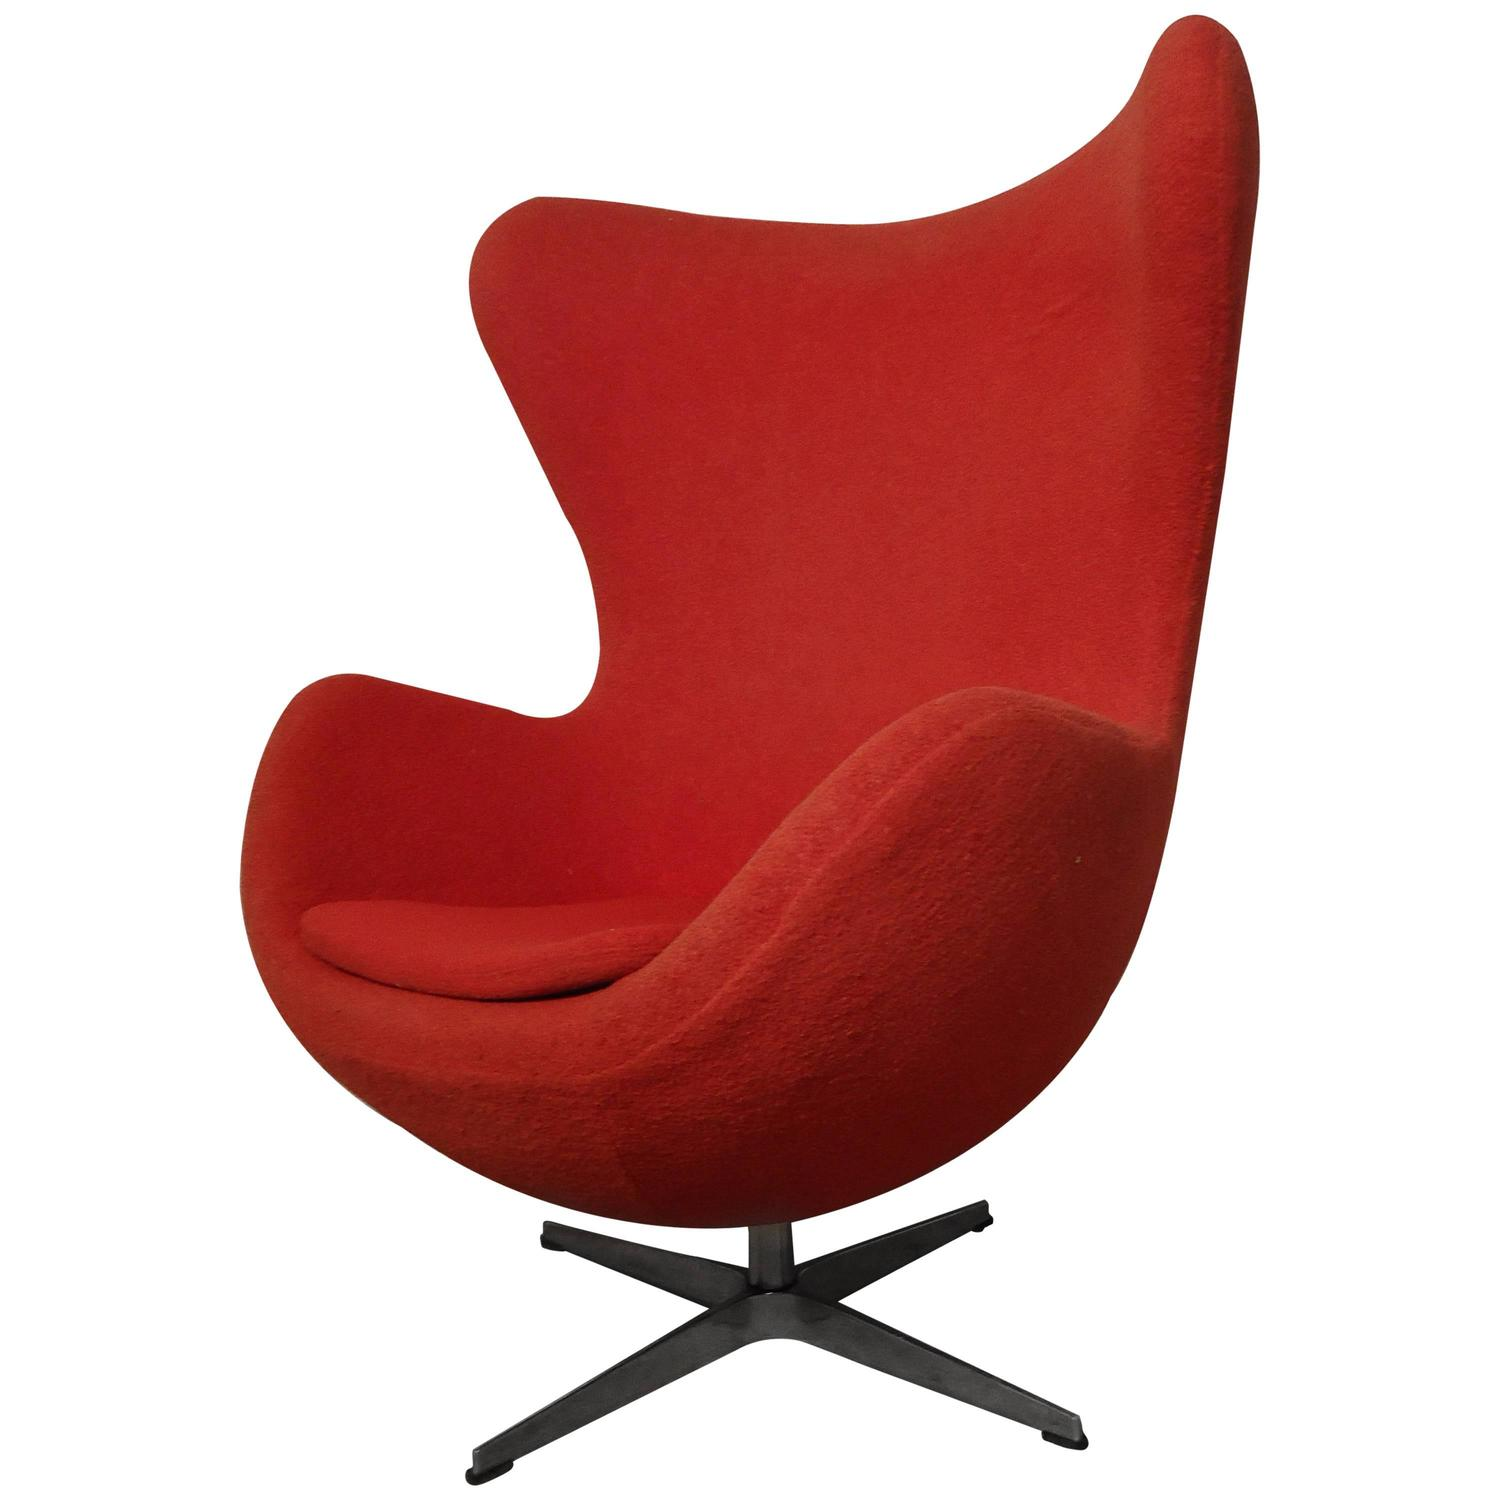 Midcentury egg chair by arne jacobsen at 1stdibs for Egg chair jacobsen